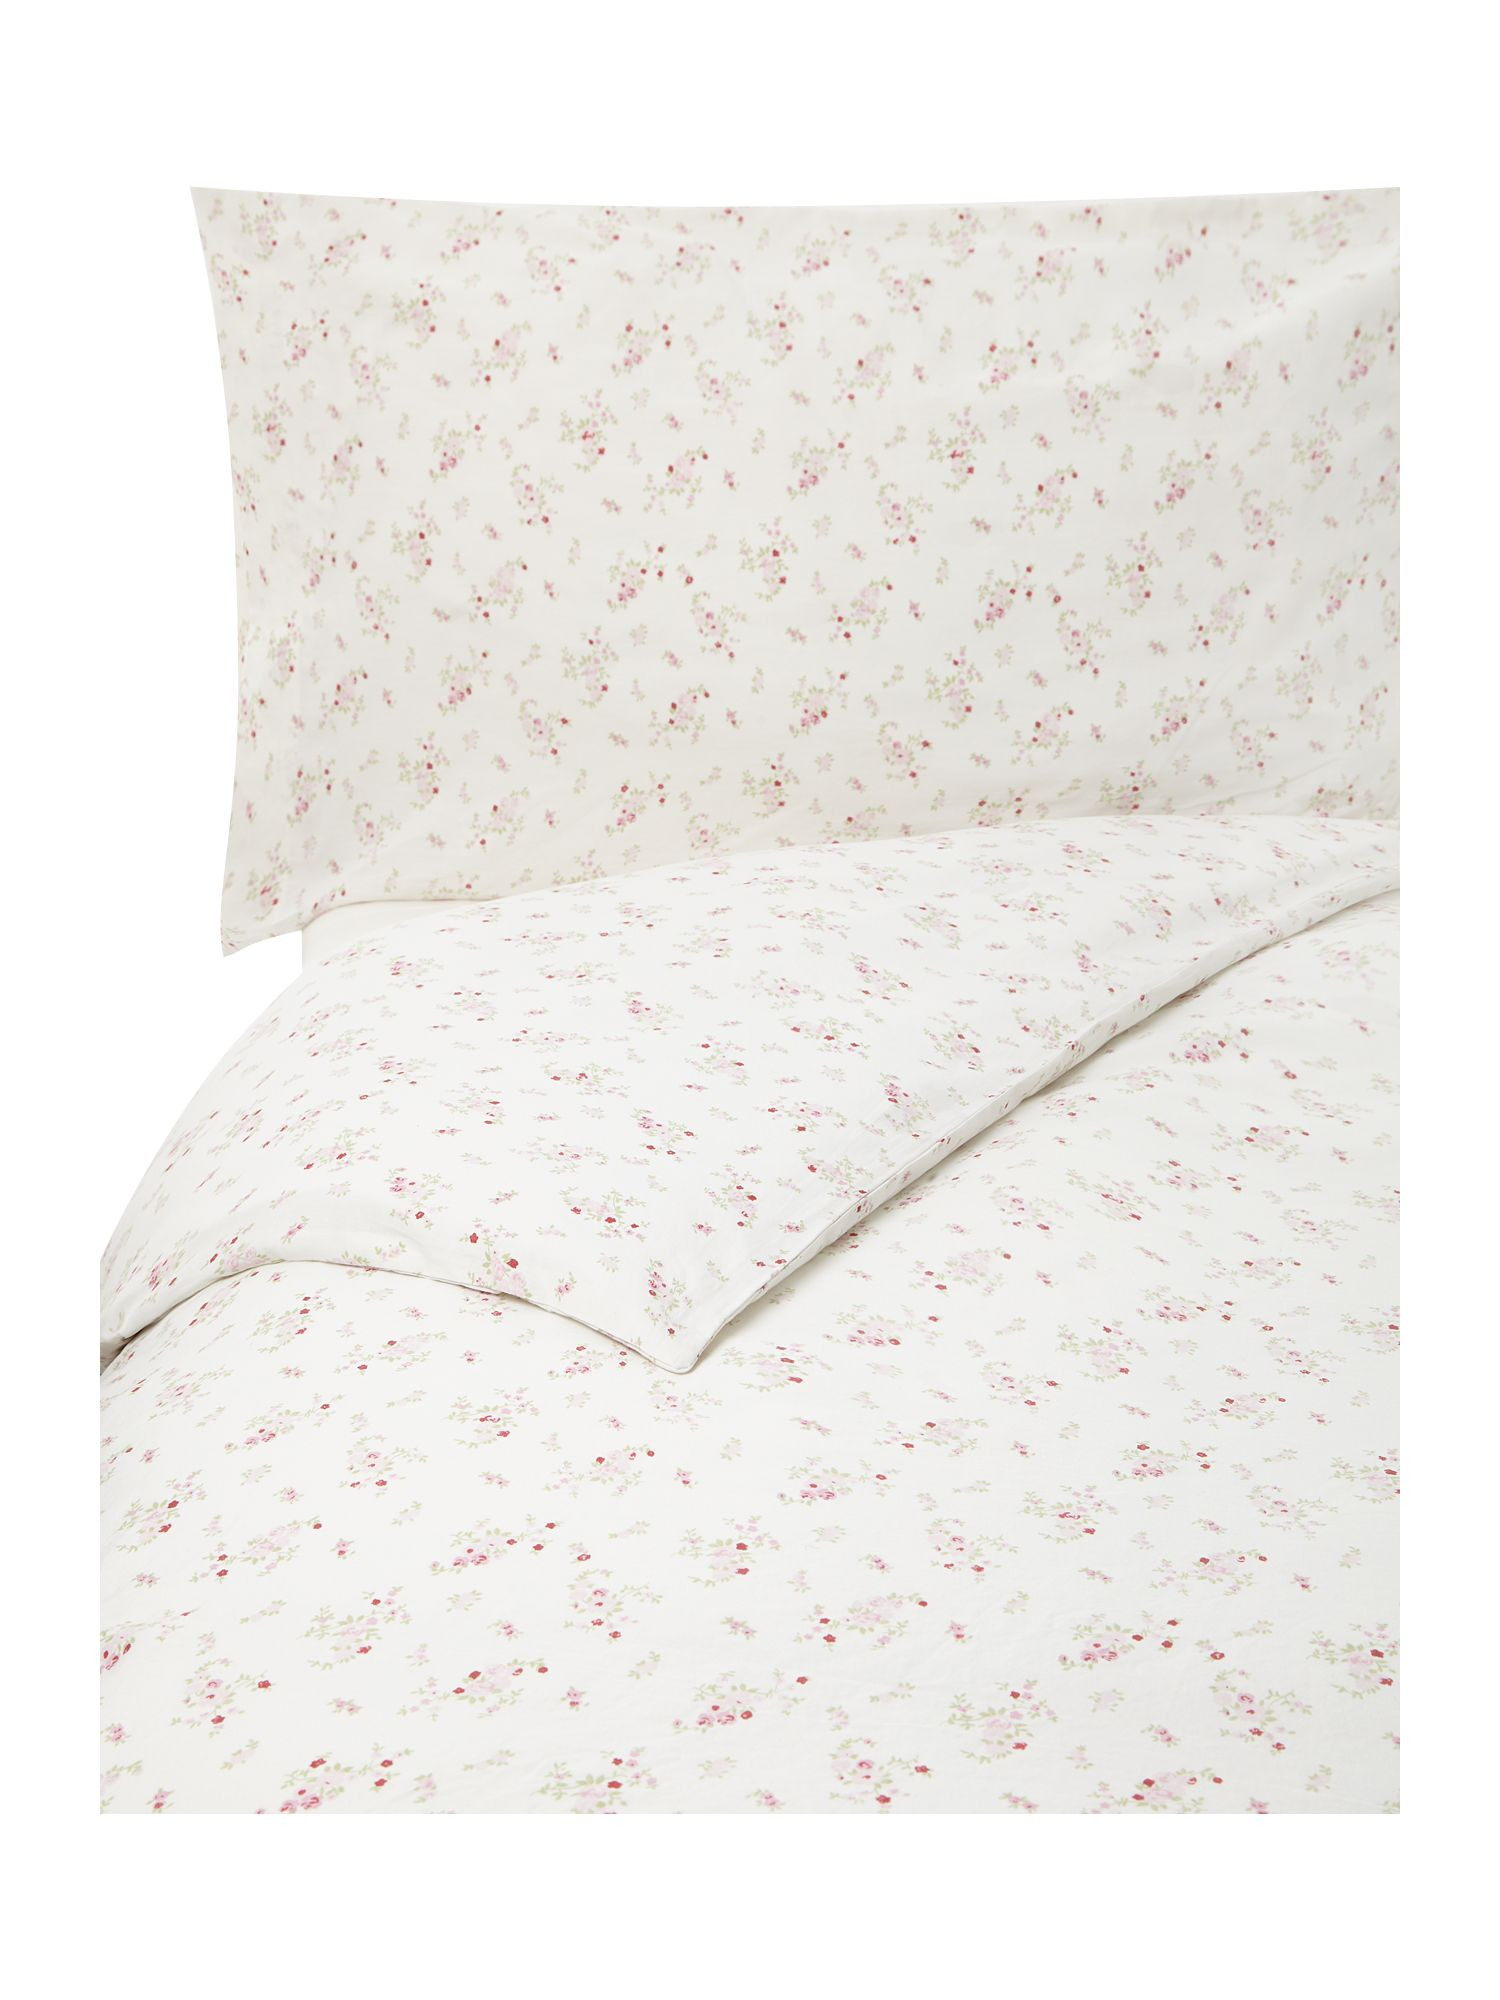 Maiden rose duvet set